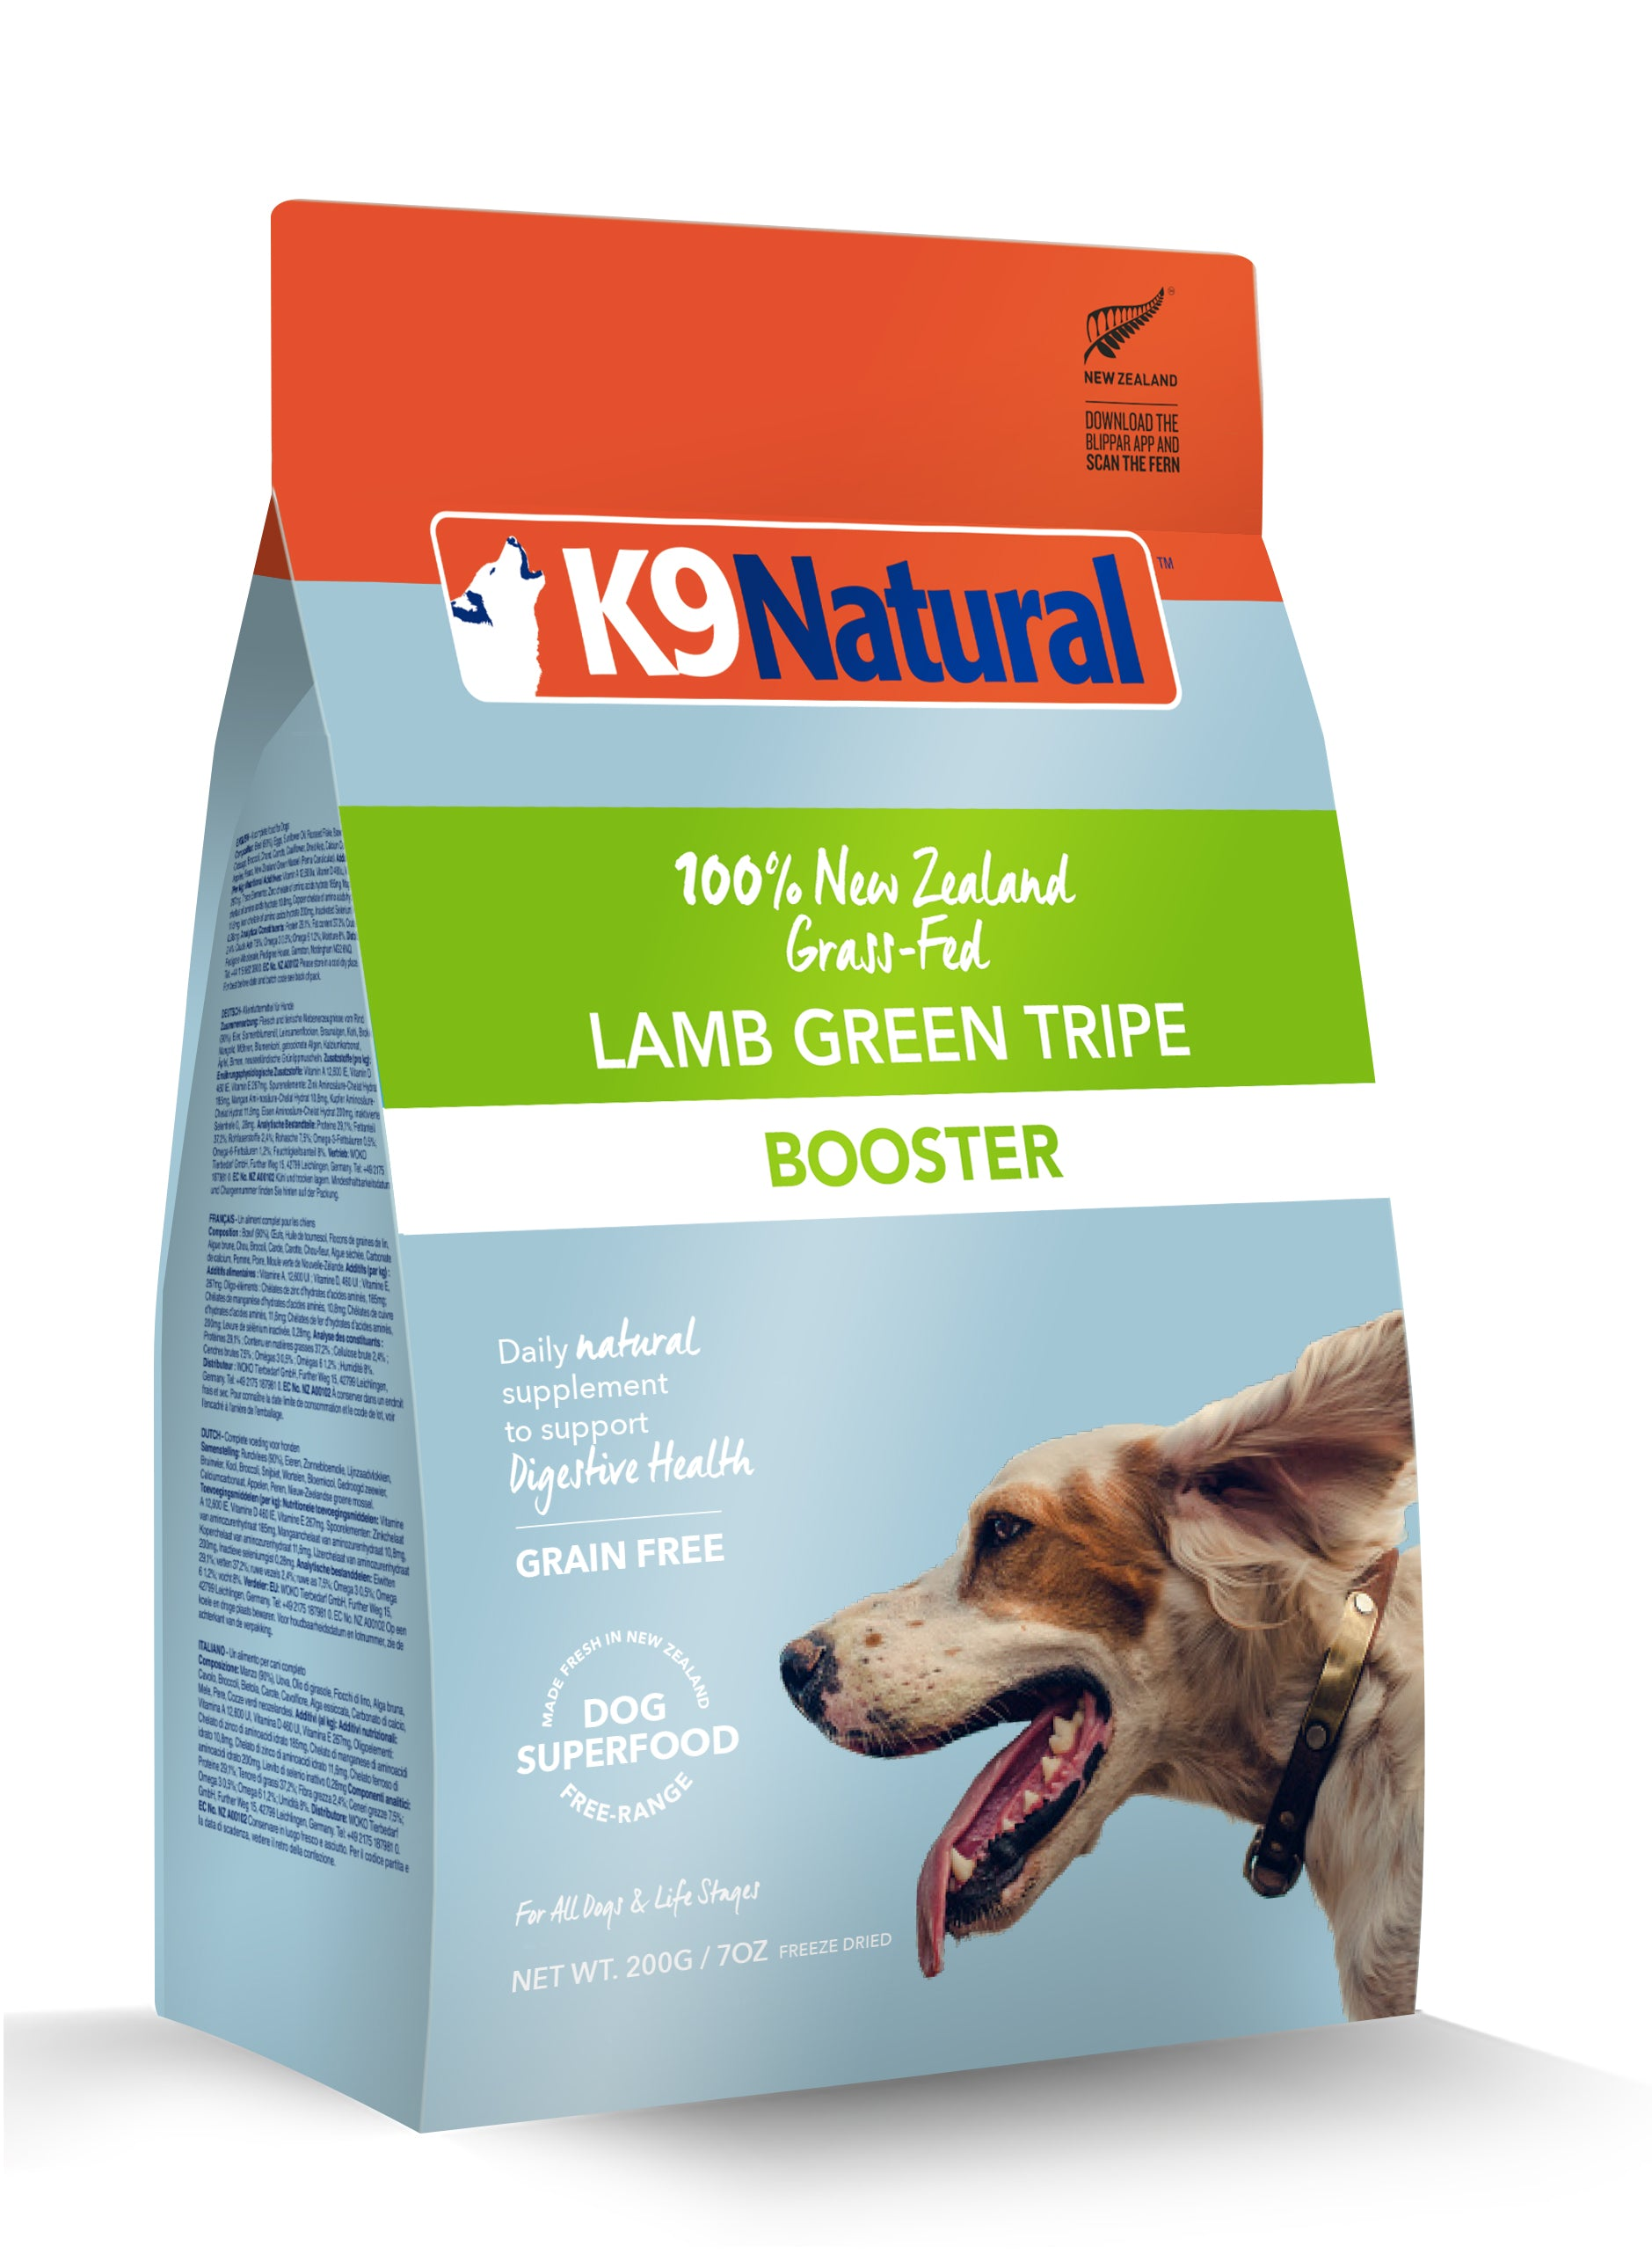 MUTT'S NEW: K9 Natural Tripe – What is it?!